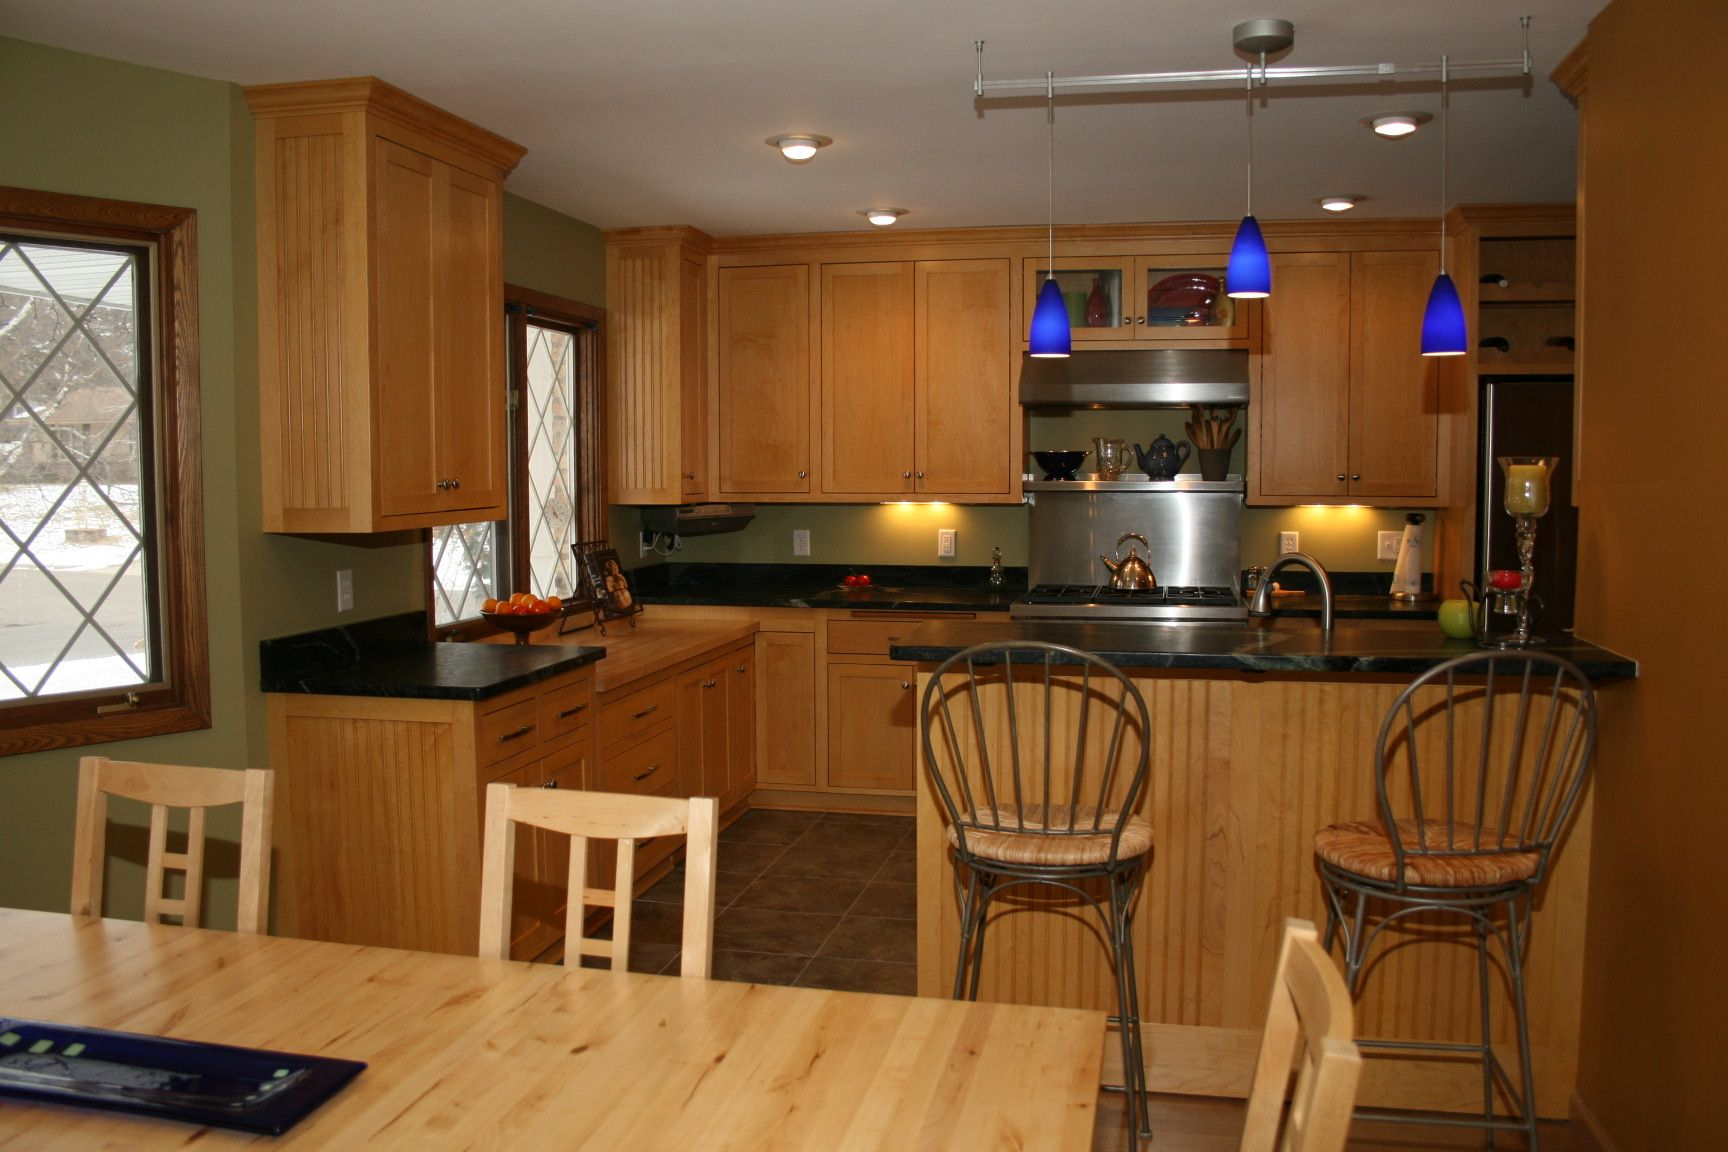 Maple Kitchen Cabinets With Marble Countertops Maple Cabinets And Soapstone Countertops Kitchen